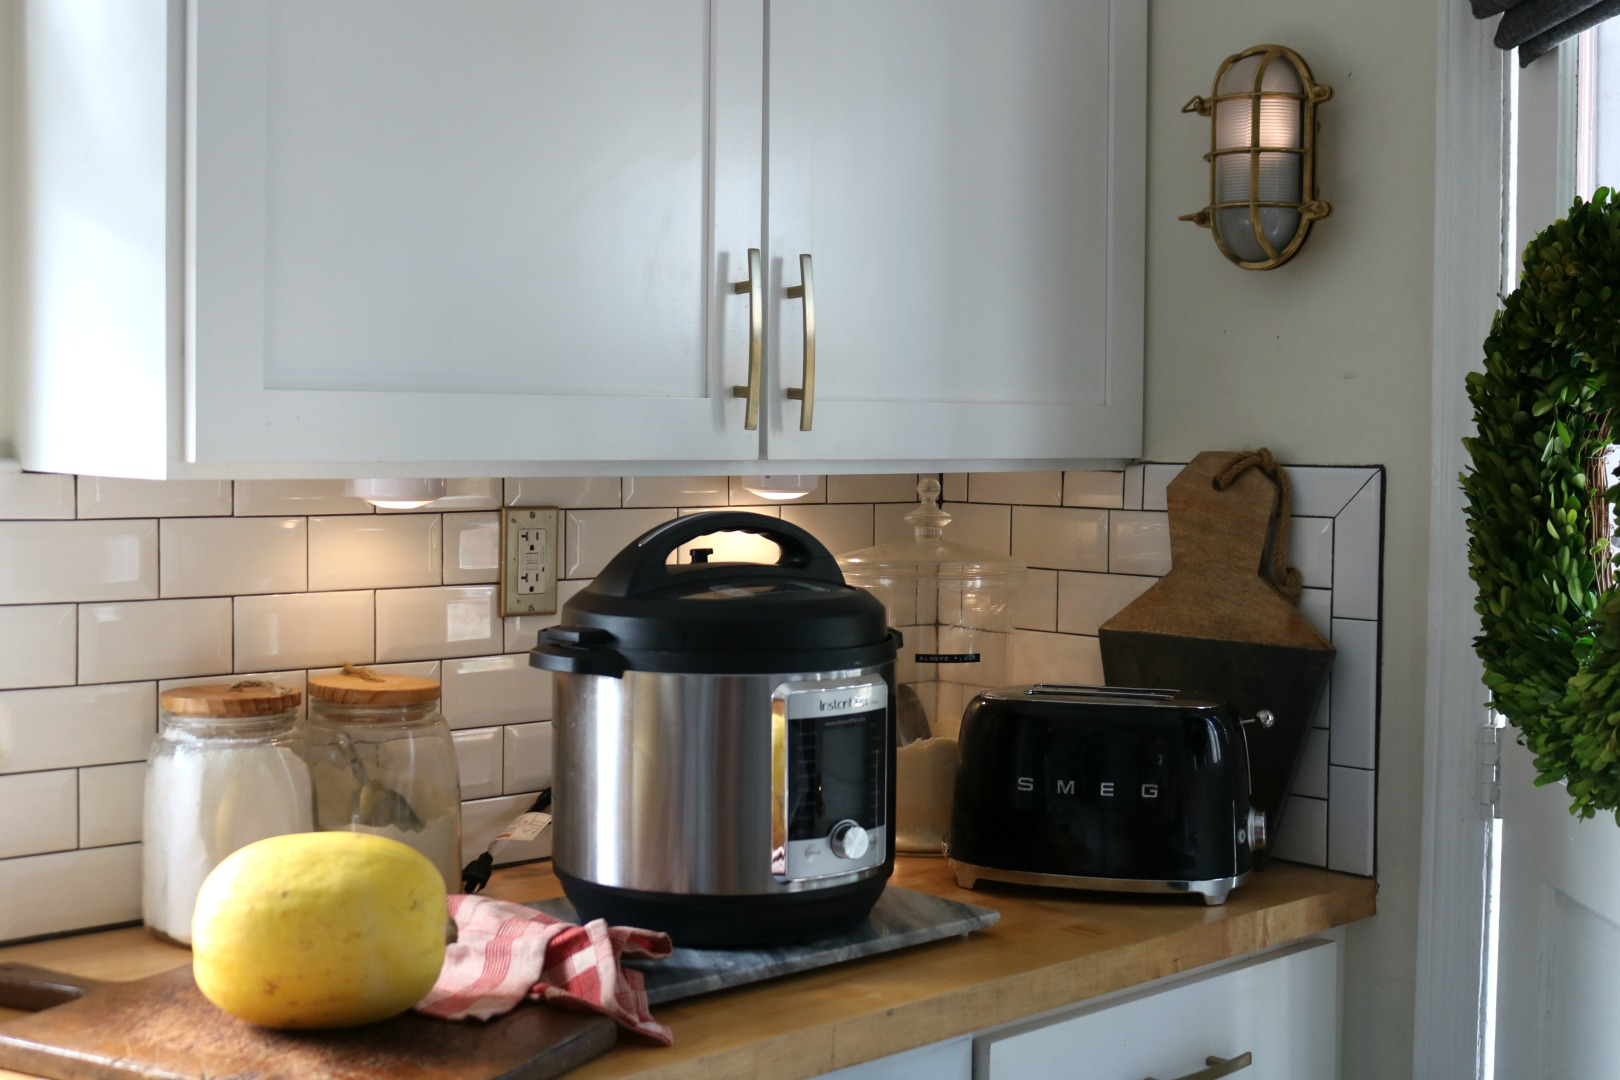 Countertop Cooking Appliances Favorite Kitchen Items Where To Get For Best Prices Nesting